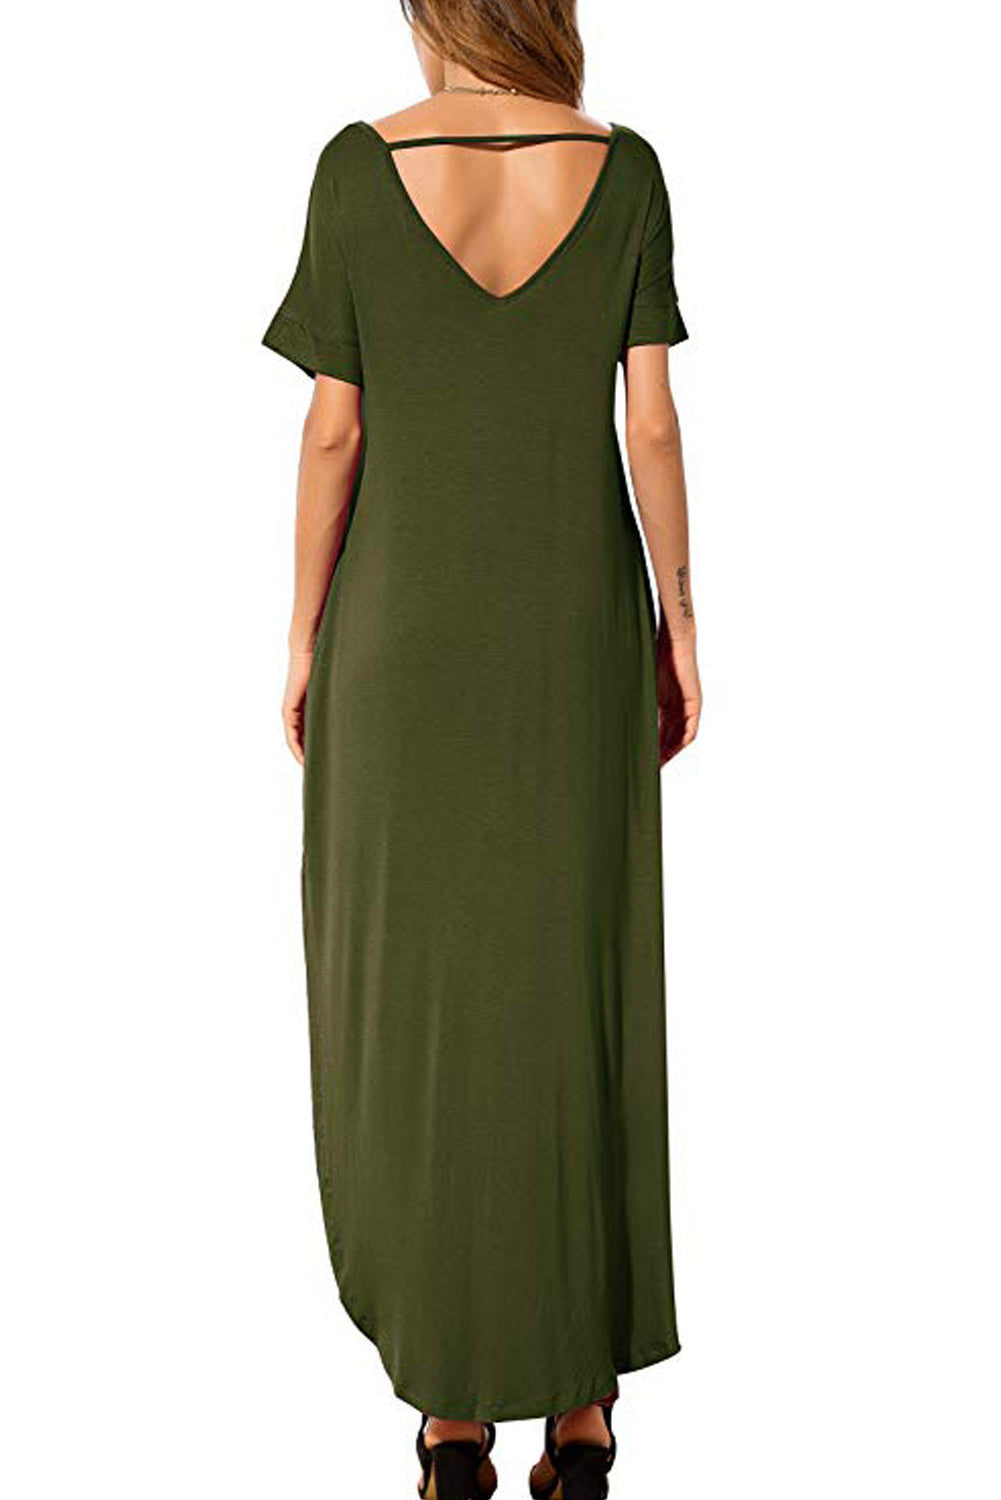 Green Lace Front Pocket Short Sleeve Split Casual Loose Maxi Dress